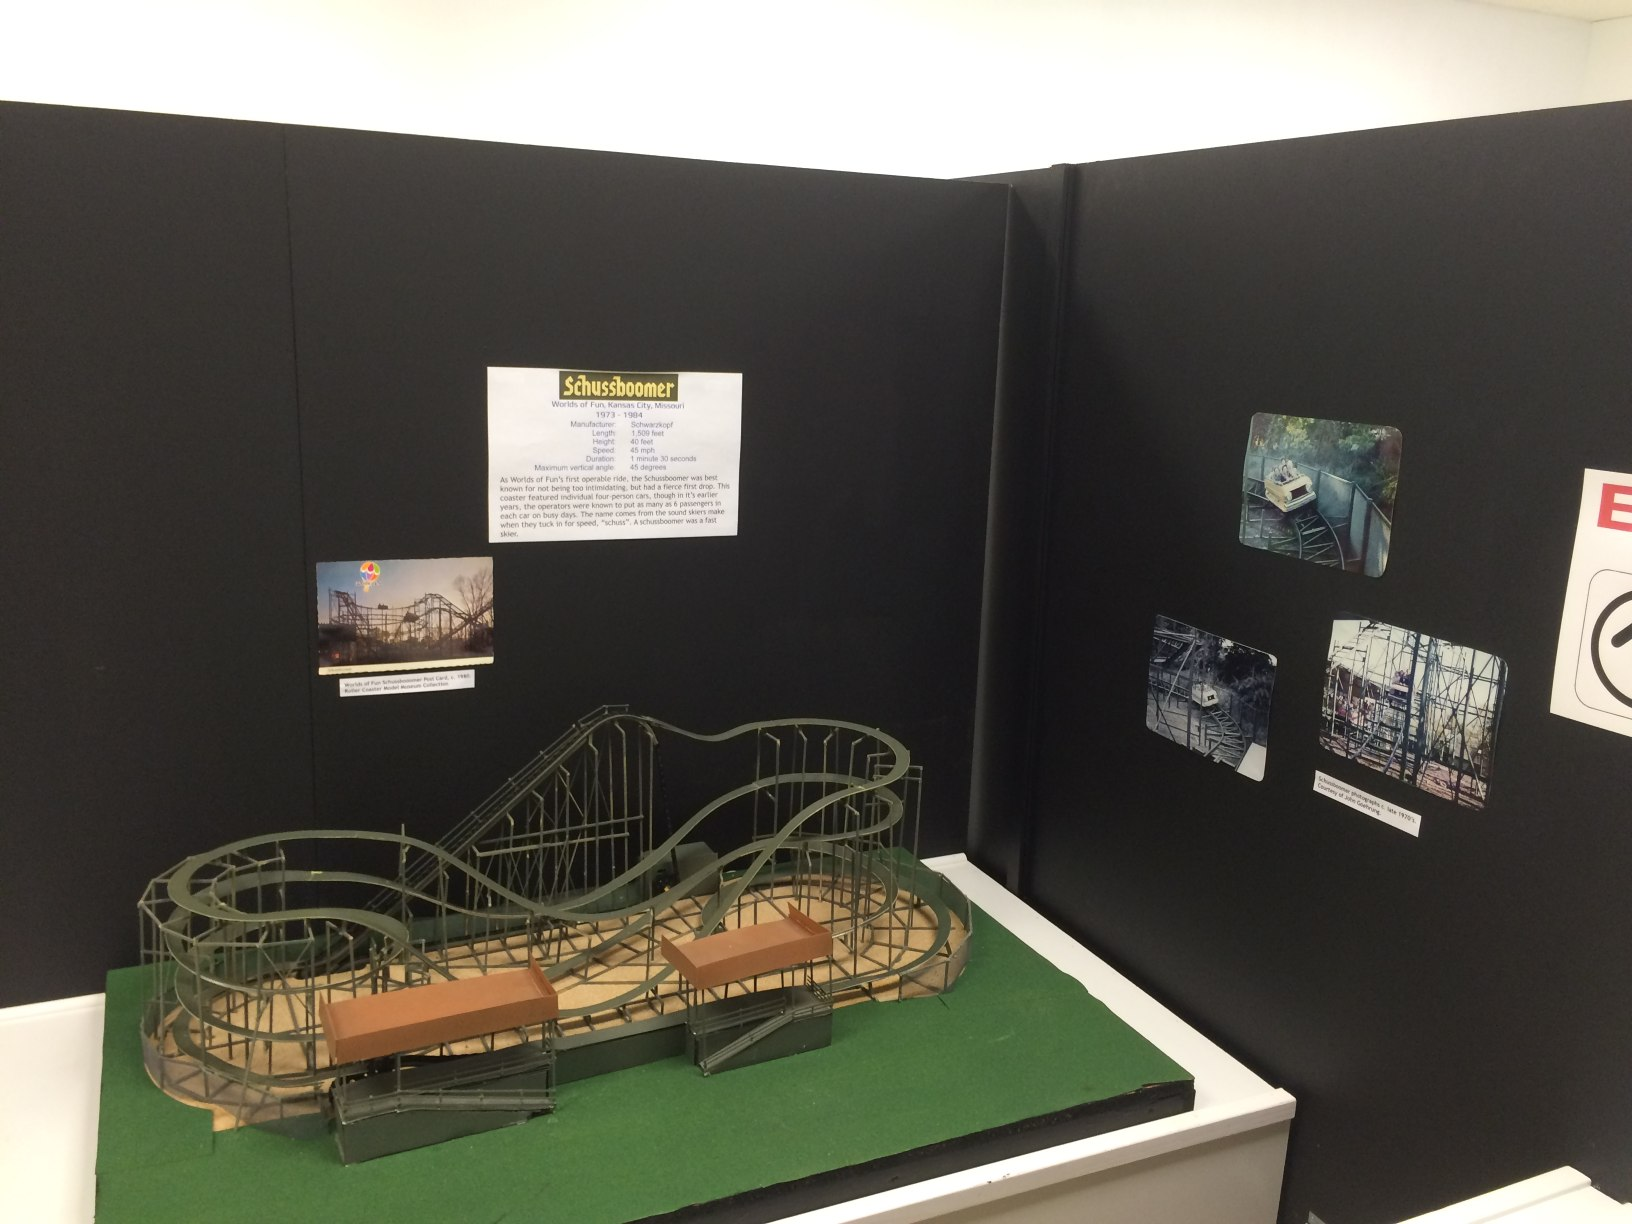 Exhibit: Schussboomer Model Roller Coaster (Worlds of Fun)